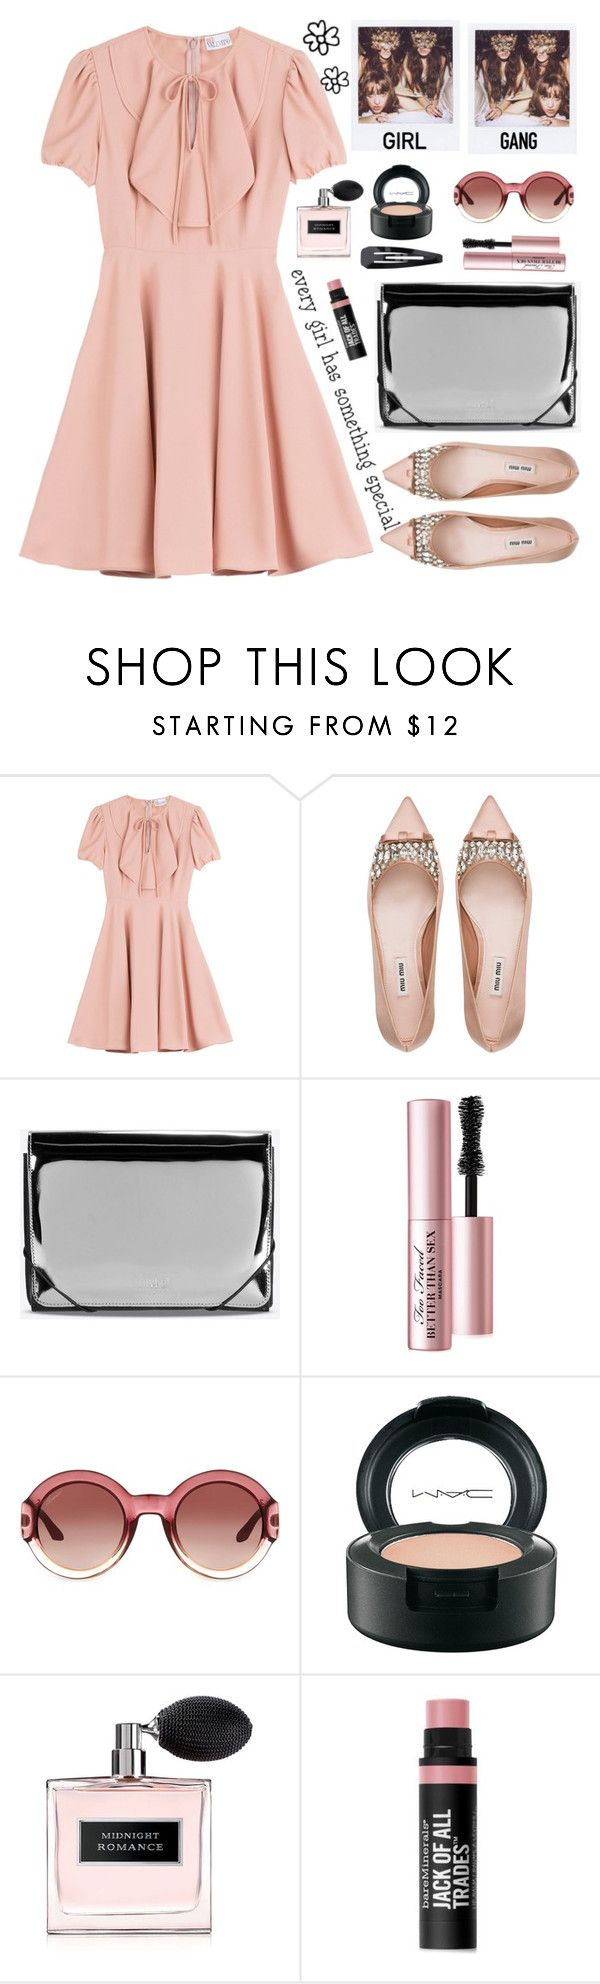 """Girls just wanna to have fun...."" by karineminzonwilson ❤ liked on Polyvore featuring RED Valentino, Miu Miu, MM6 Maison Margiela, Too Faced Cosmetics, Gucci, MAC Cosmetics, Ralph Lauren, Bare Escentuals, Forever 21 and women's clothing"